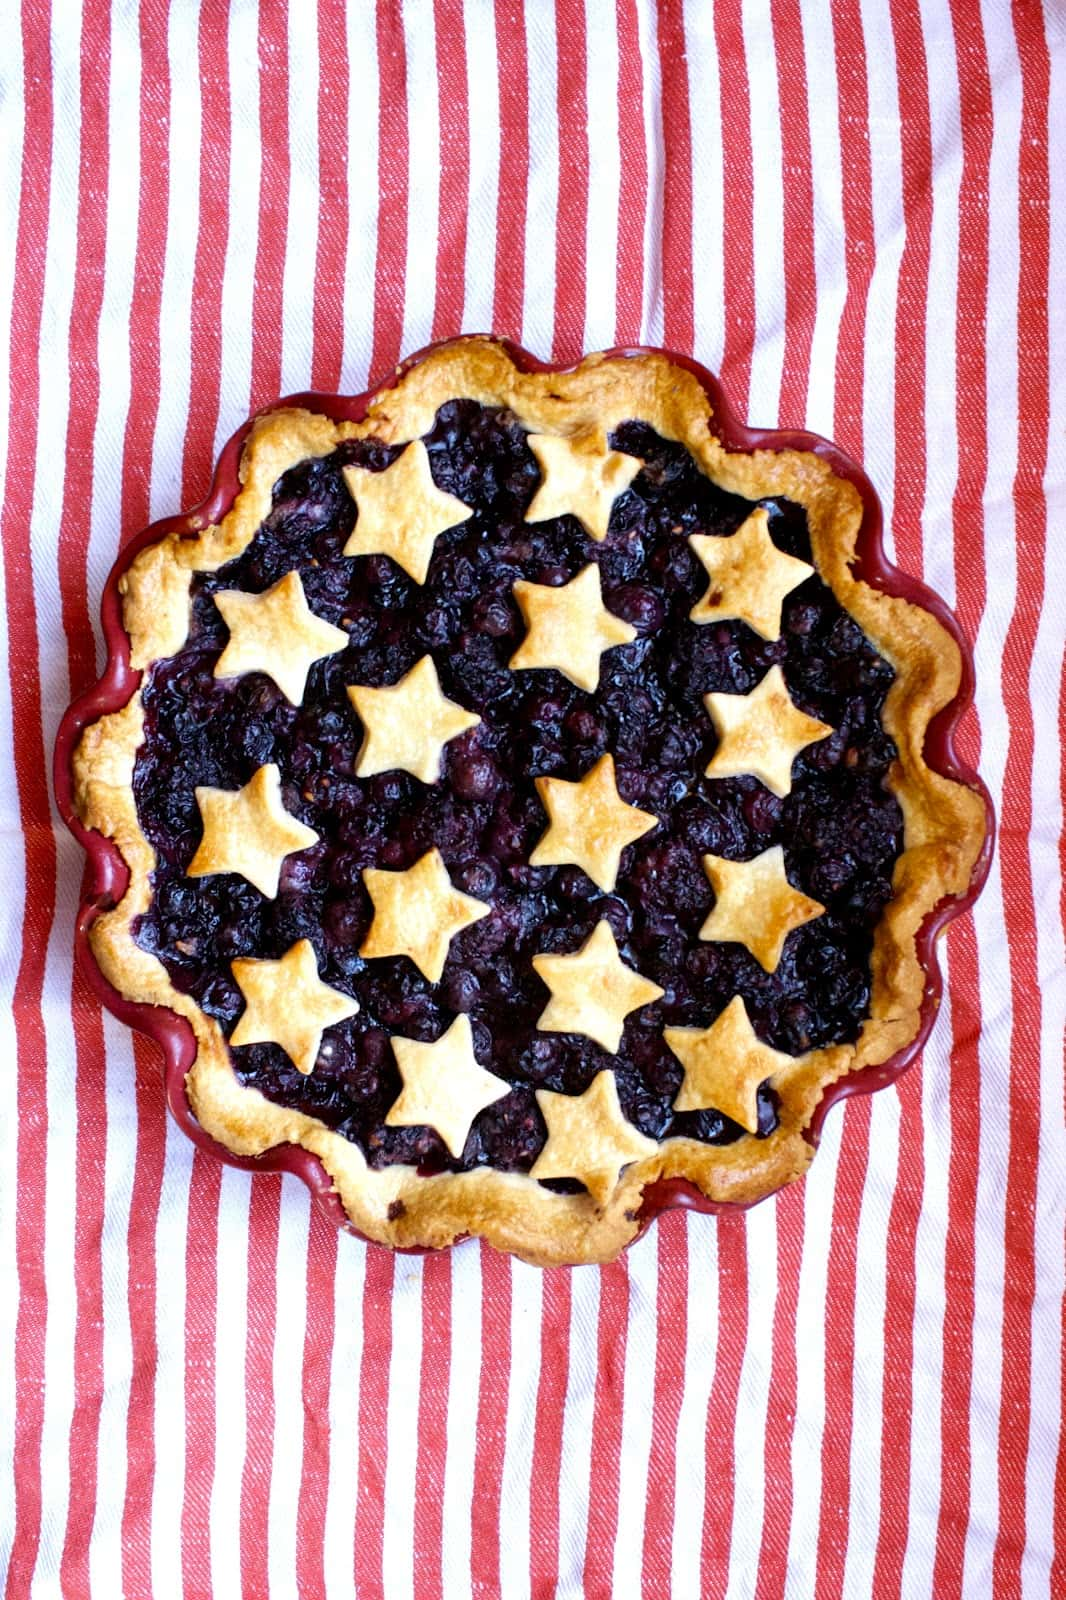 4th of July Dessert Pie